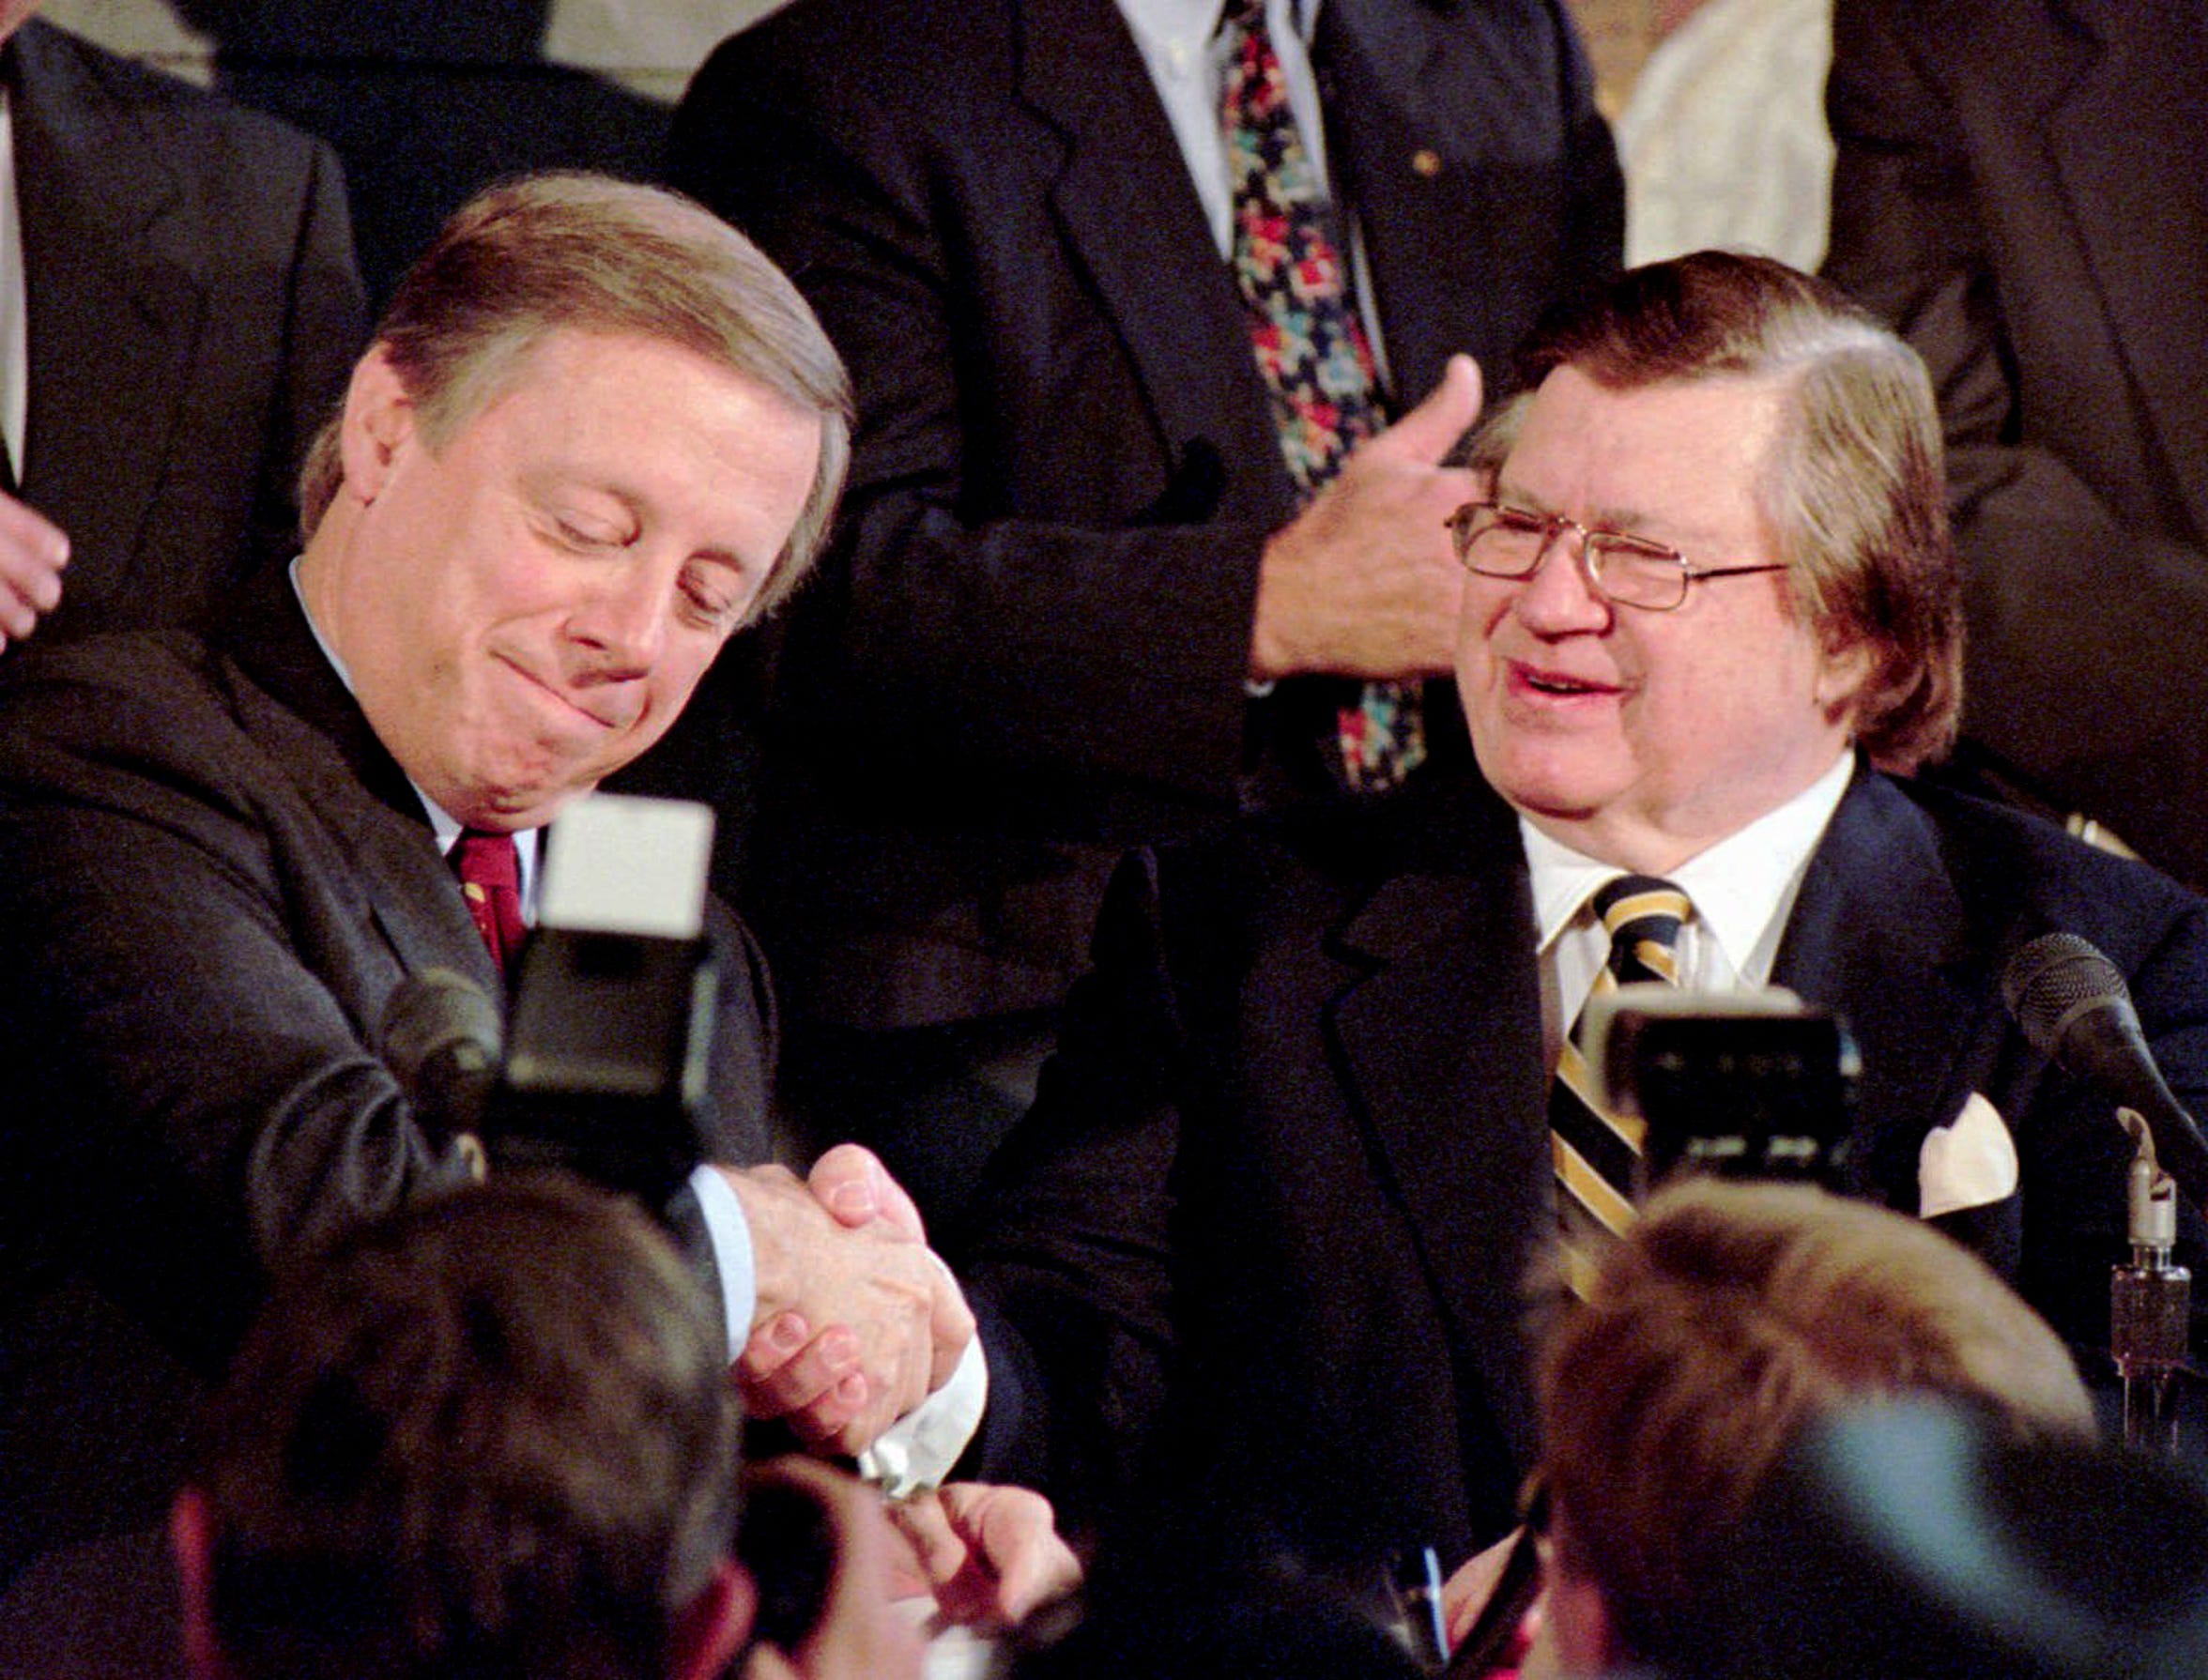 Bud Adams, right, owner of the Houston Oilers, and Metro Mayor Phil Bredesen shake hands to seal the agreement that will move the team to Nashville providing the city meets several requirements, including the construction of a stadium by 1998. The two appeared together in Nashville Nov. 16, 1995 to sign the deal.